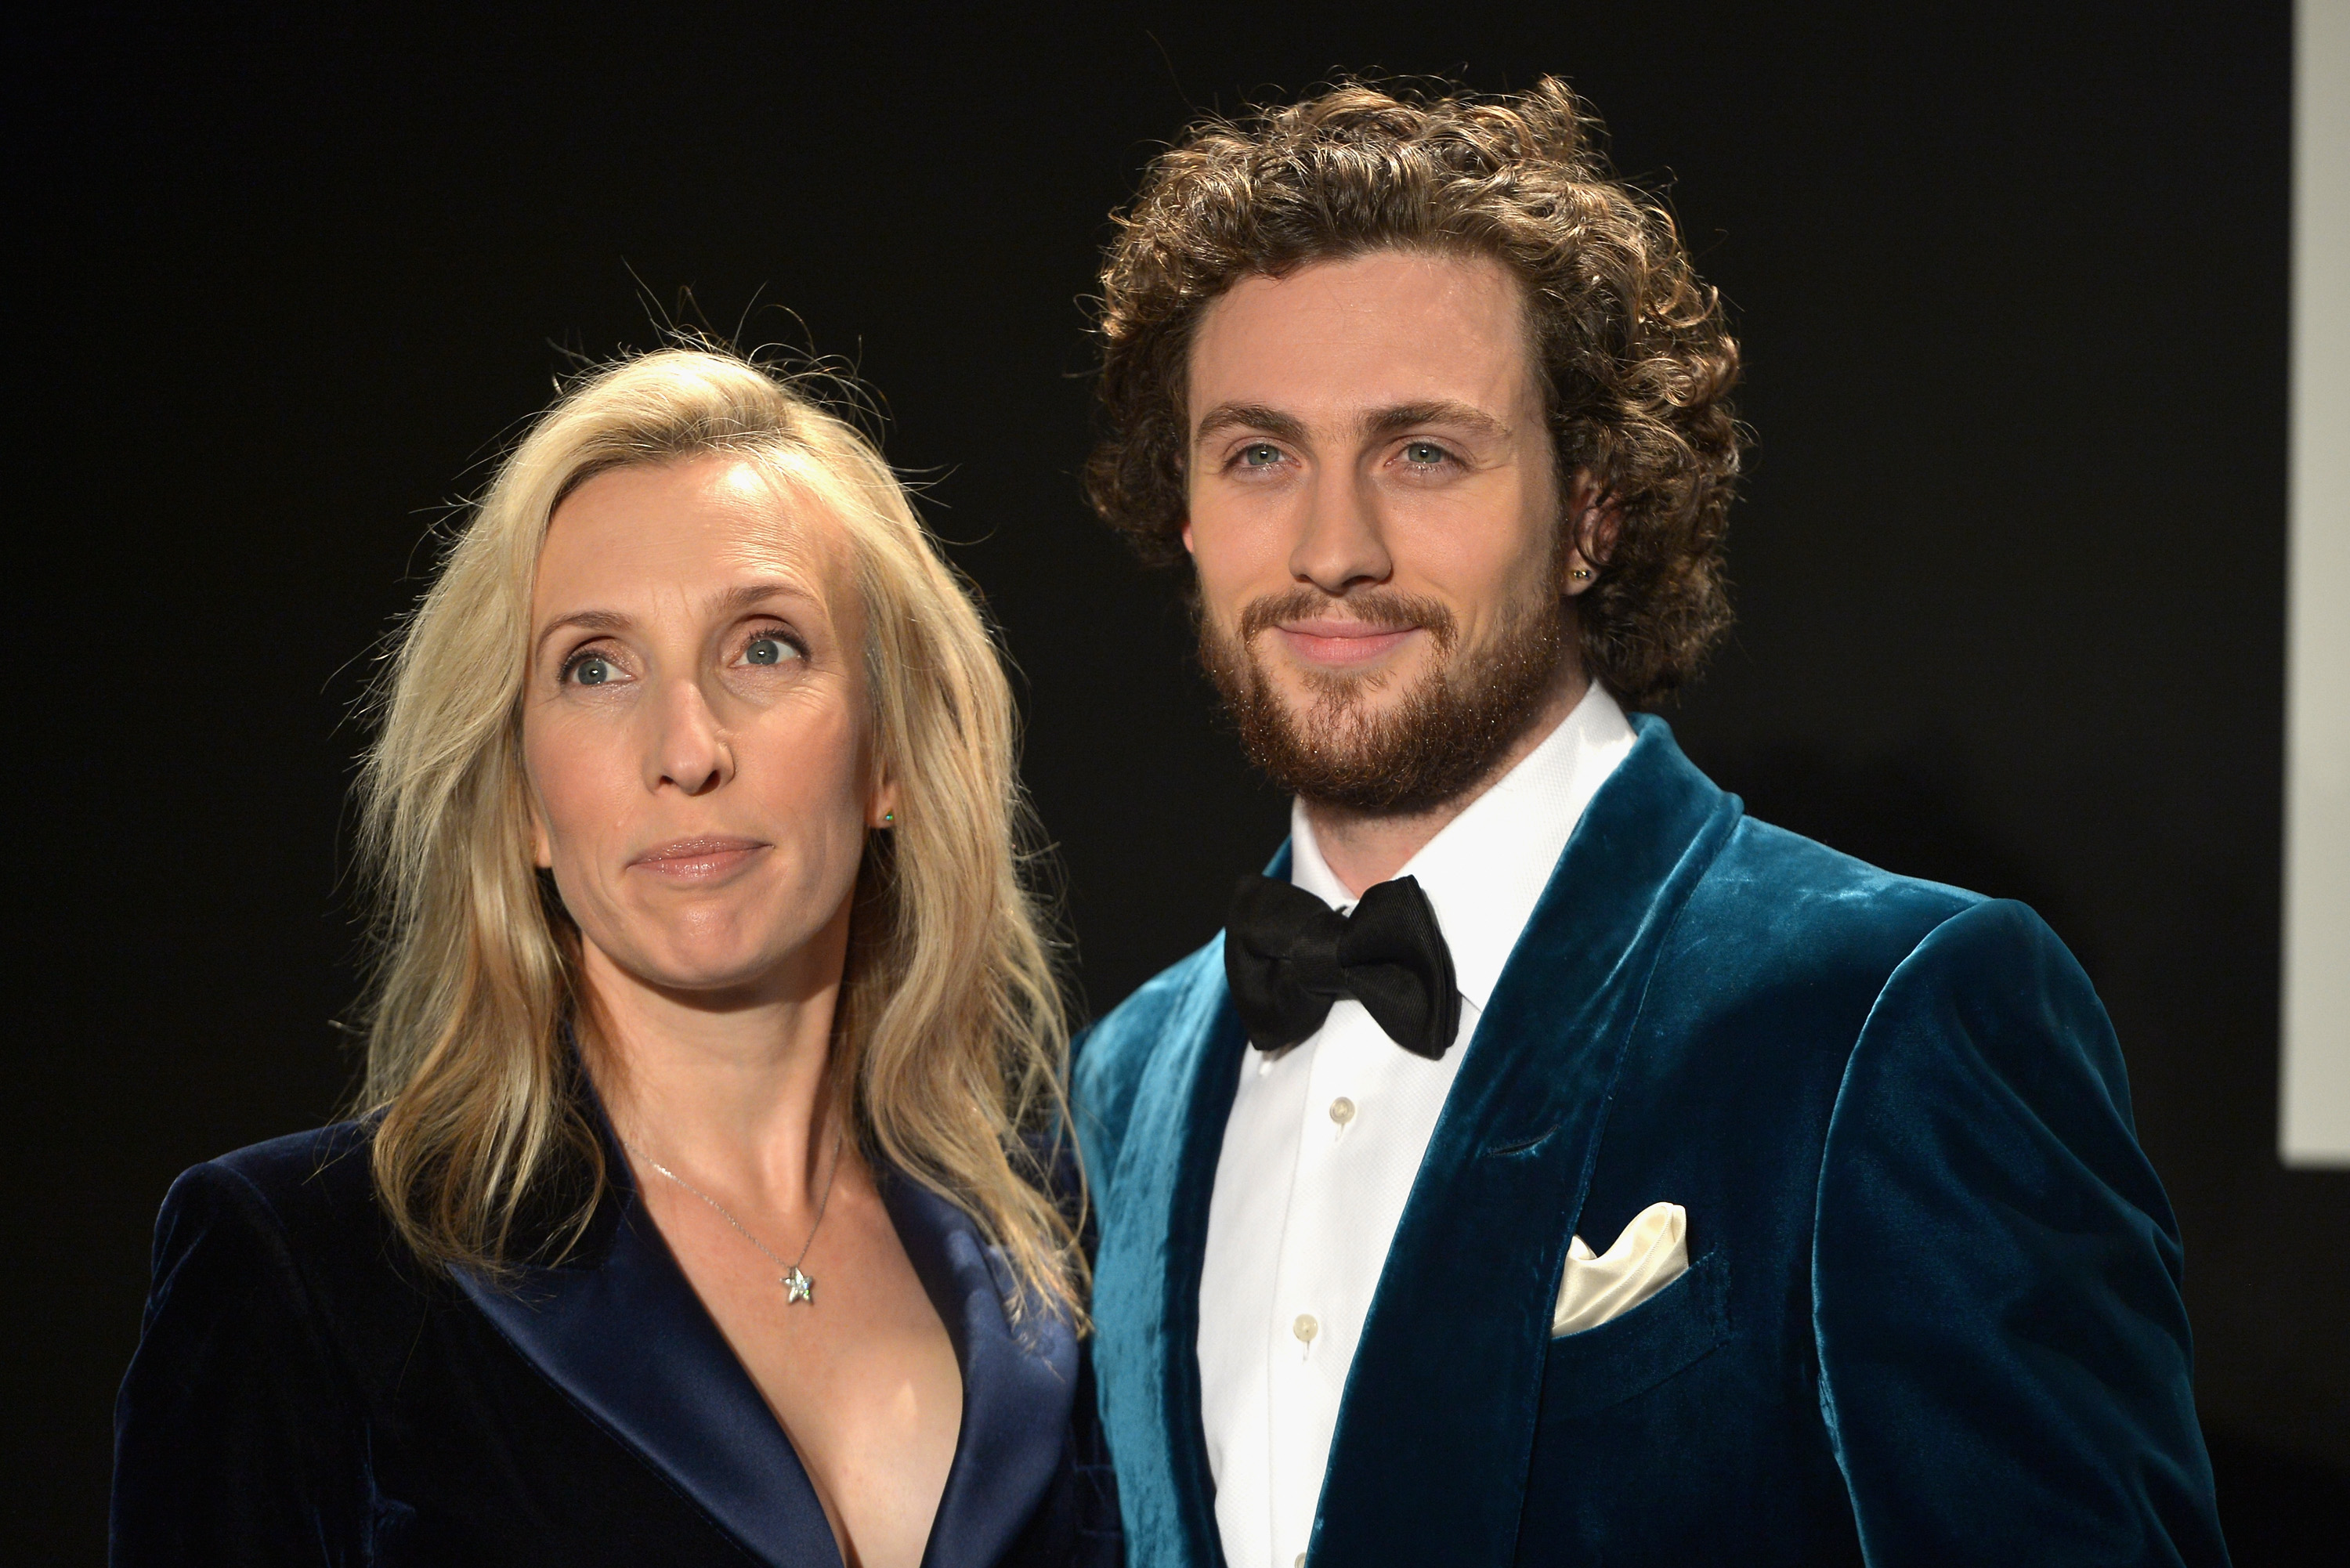 LOS ANGELES, CA - FEBRUARY 20: Director Sam Taylor-Johnson (L) and actor Aaron Taylor-Johnson, both wearing TOM FORD, attend the TOM FORD Autumn/Winter 2015 Womenswear Collection Presentation at Milk Studios in Los Angeles on February 20, 2015. (Photo by Charley Gallay/Getty Images for Tom Ford)